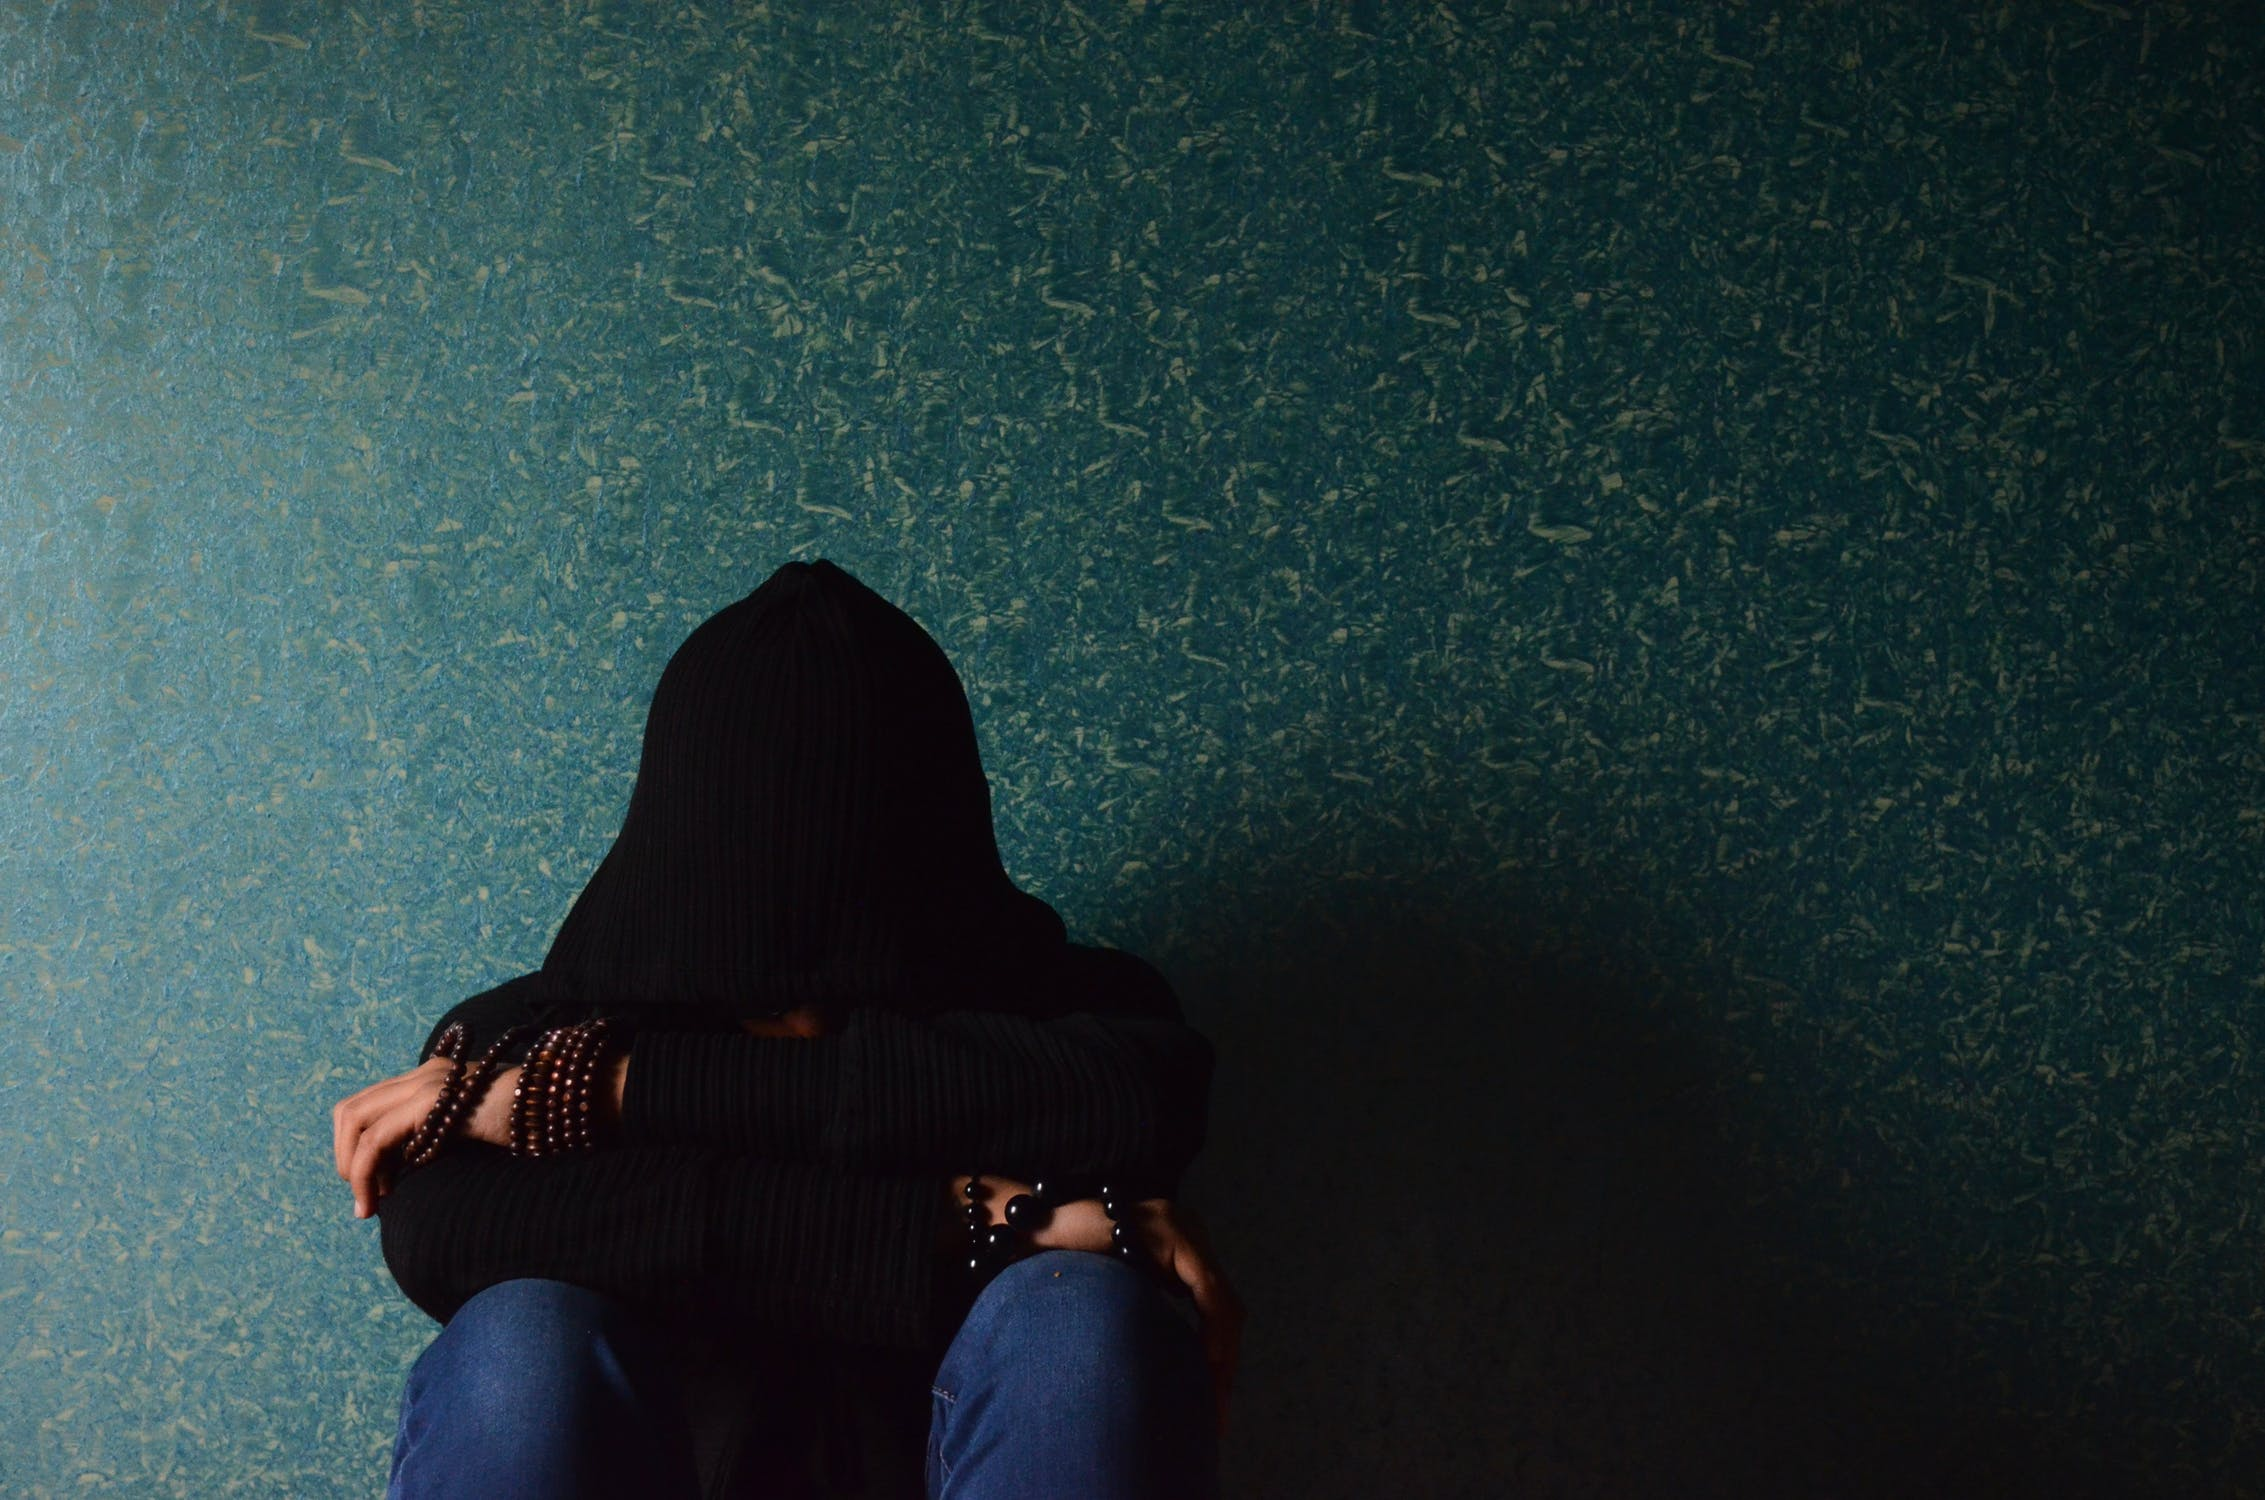 Could Suicide Risk Be Predicted from a Patient's Records?